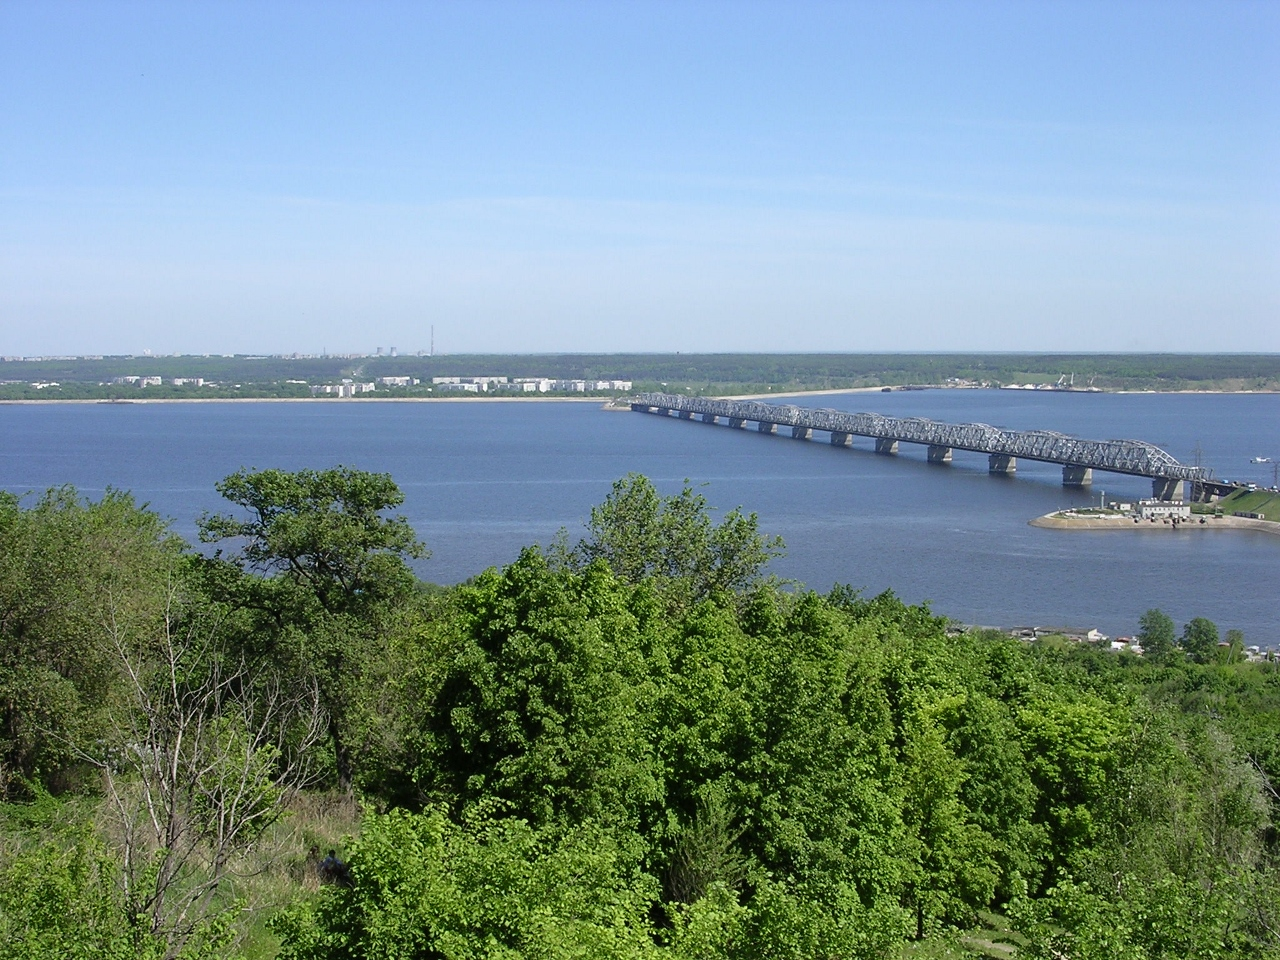 The Volga River in Europe is popular with river cruising.